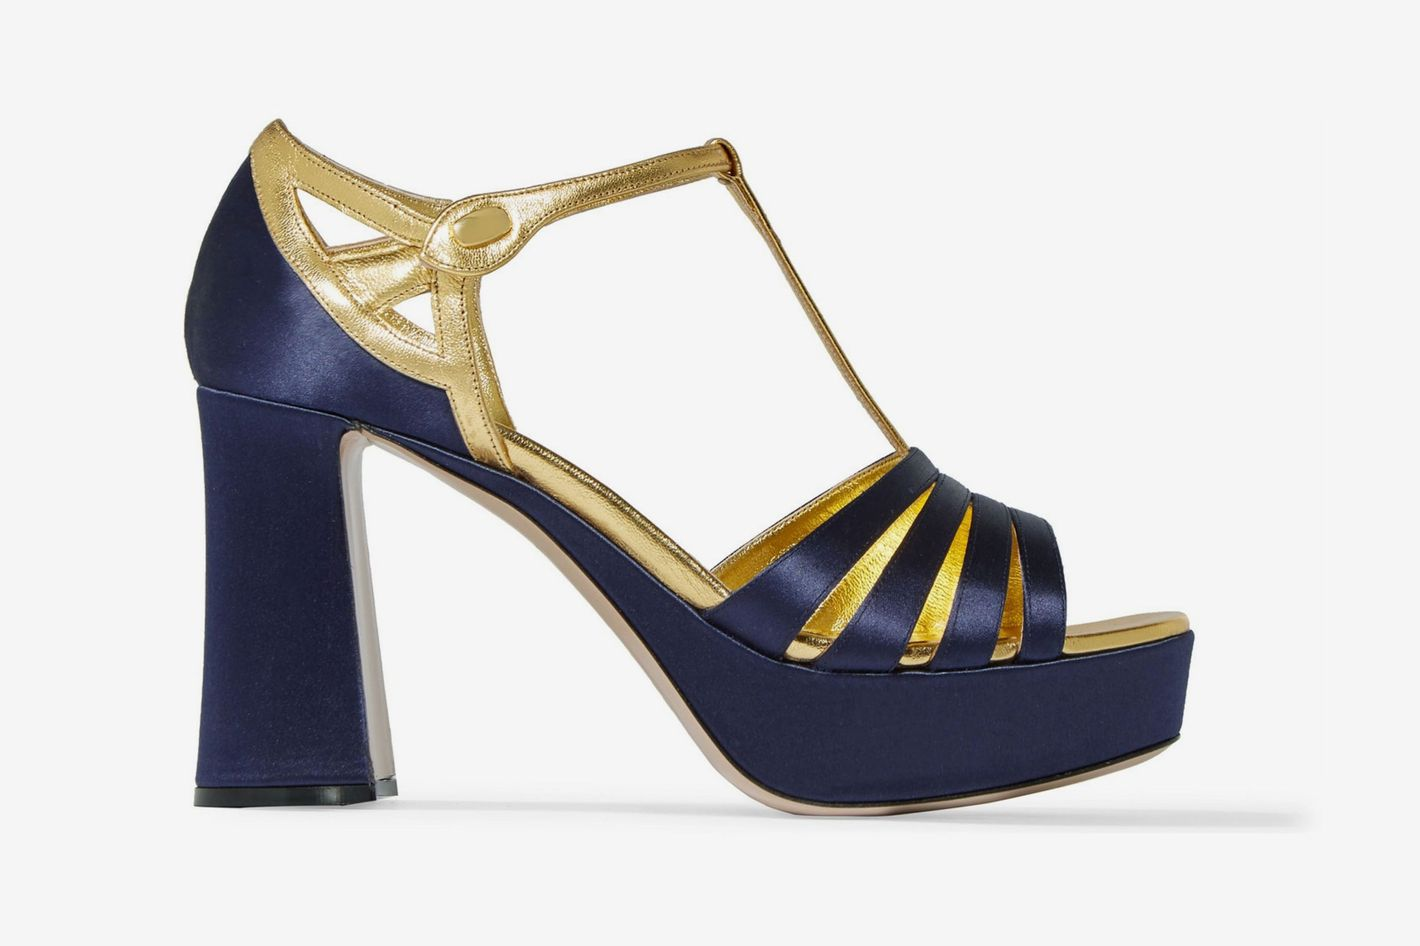 Miu Miu Satin and metallic leather platform sandals